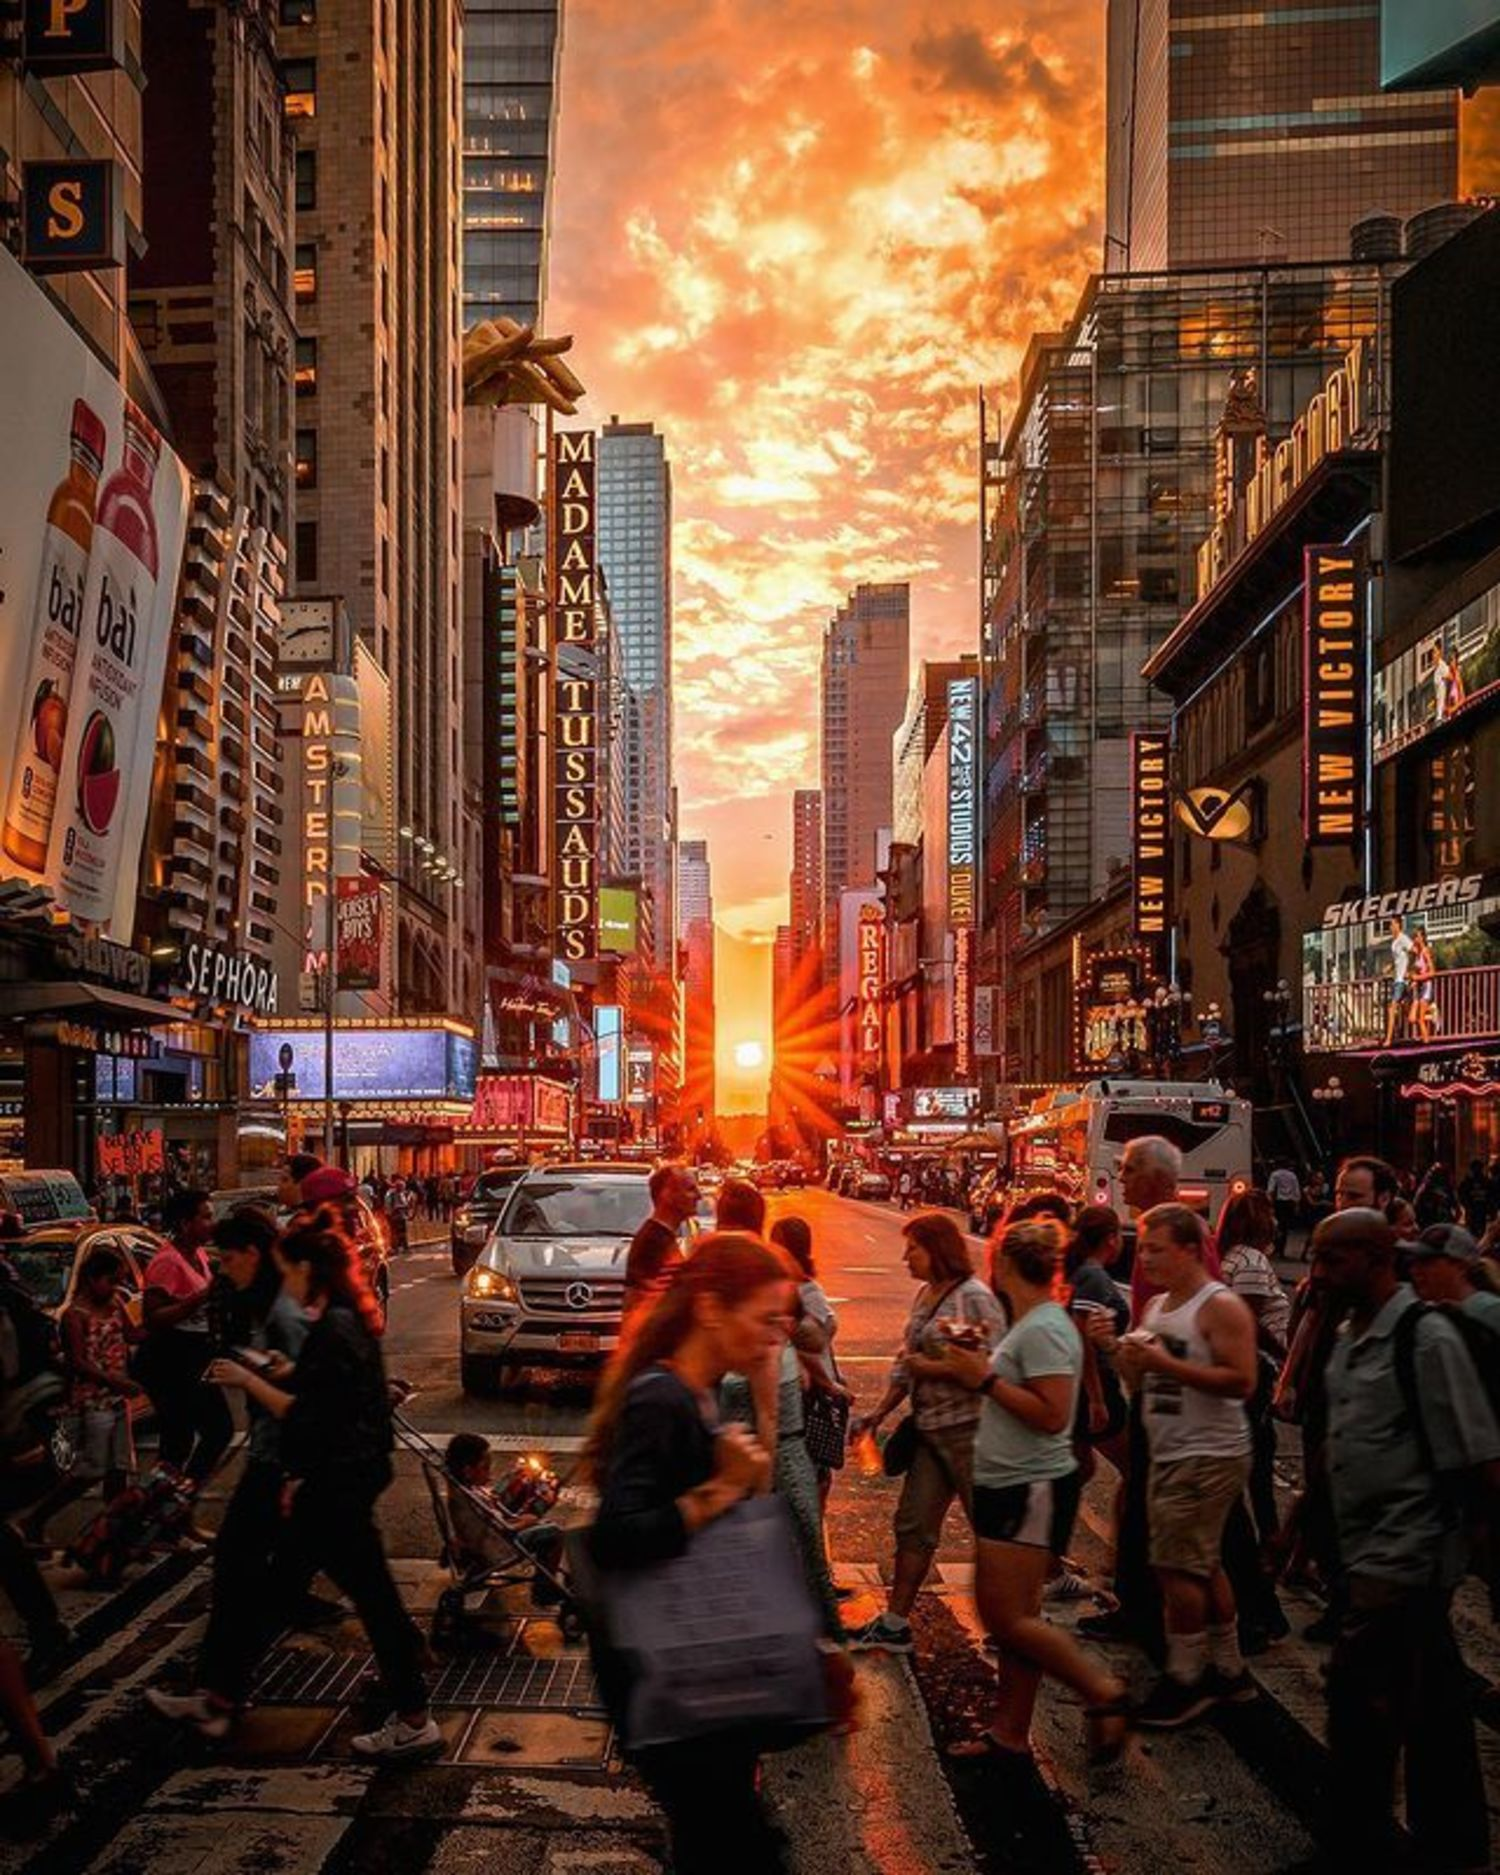 West 42nd Street, Times Square, Midtown, Manhattan